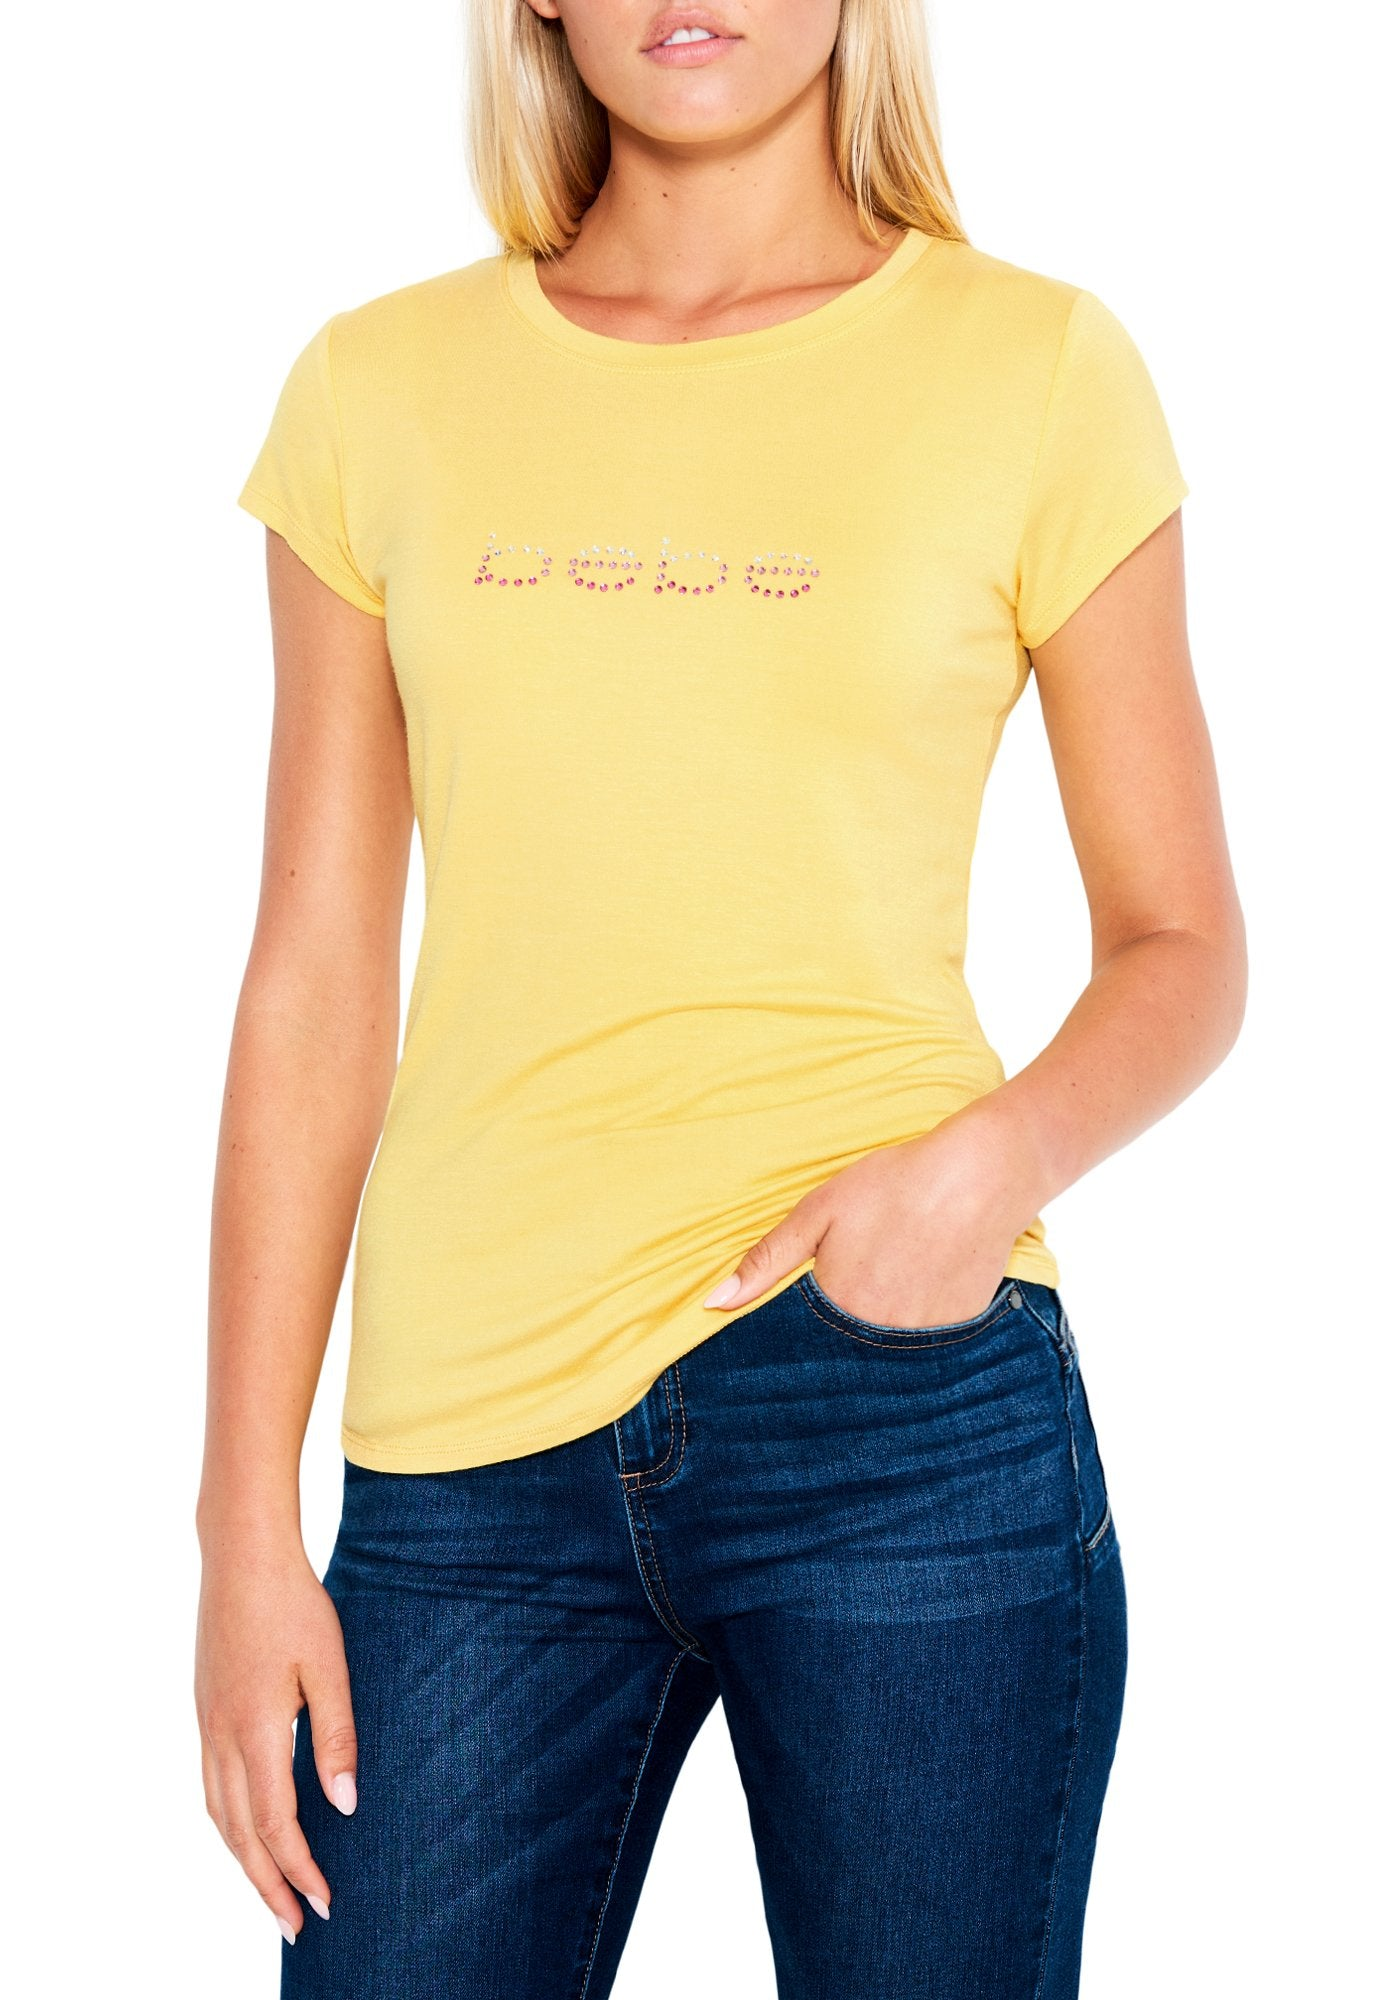 Image of Women's Bebe Logo Ombre Rhinestone Tee Shirt, Size Small in ASPEN GOLD Spandex